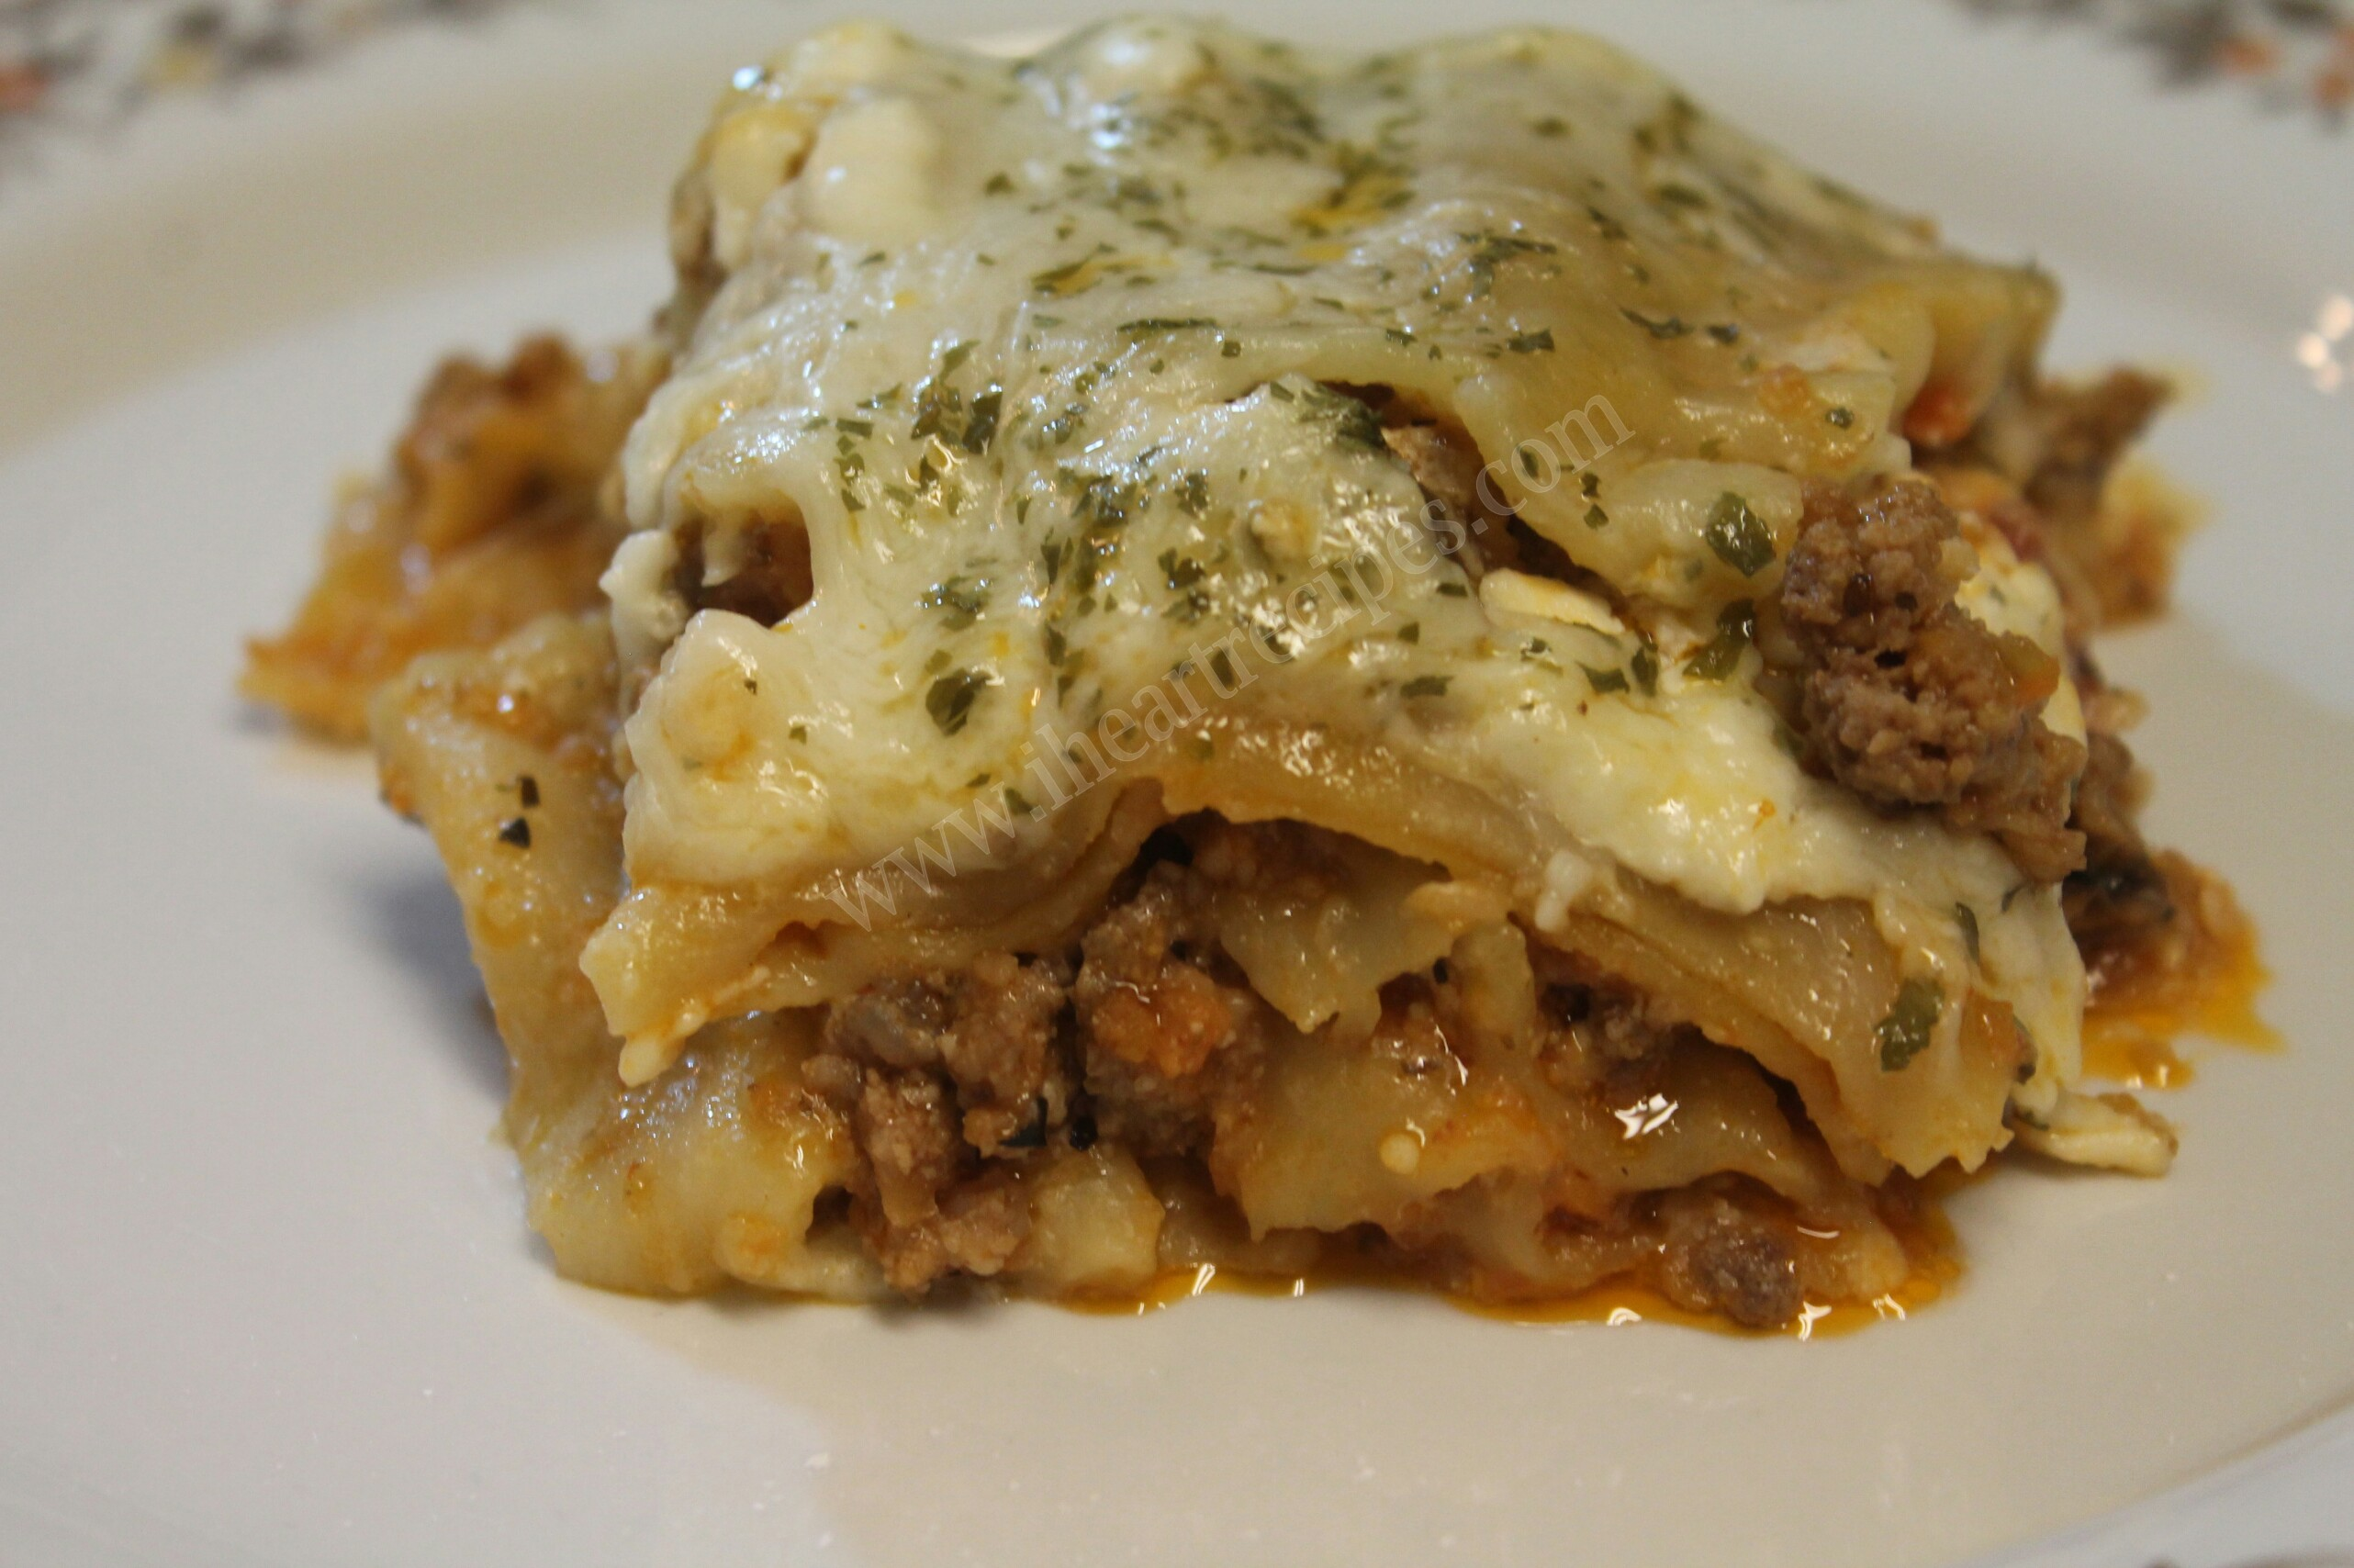 Slow cooker lasagna is a heart dinner that's so easy to pull together